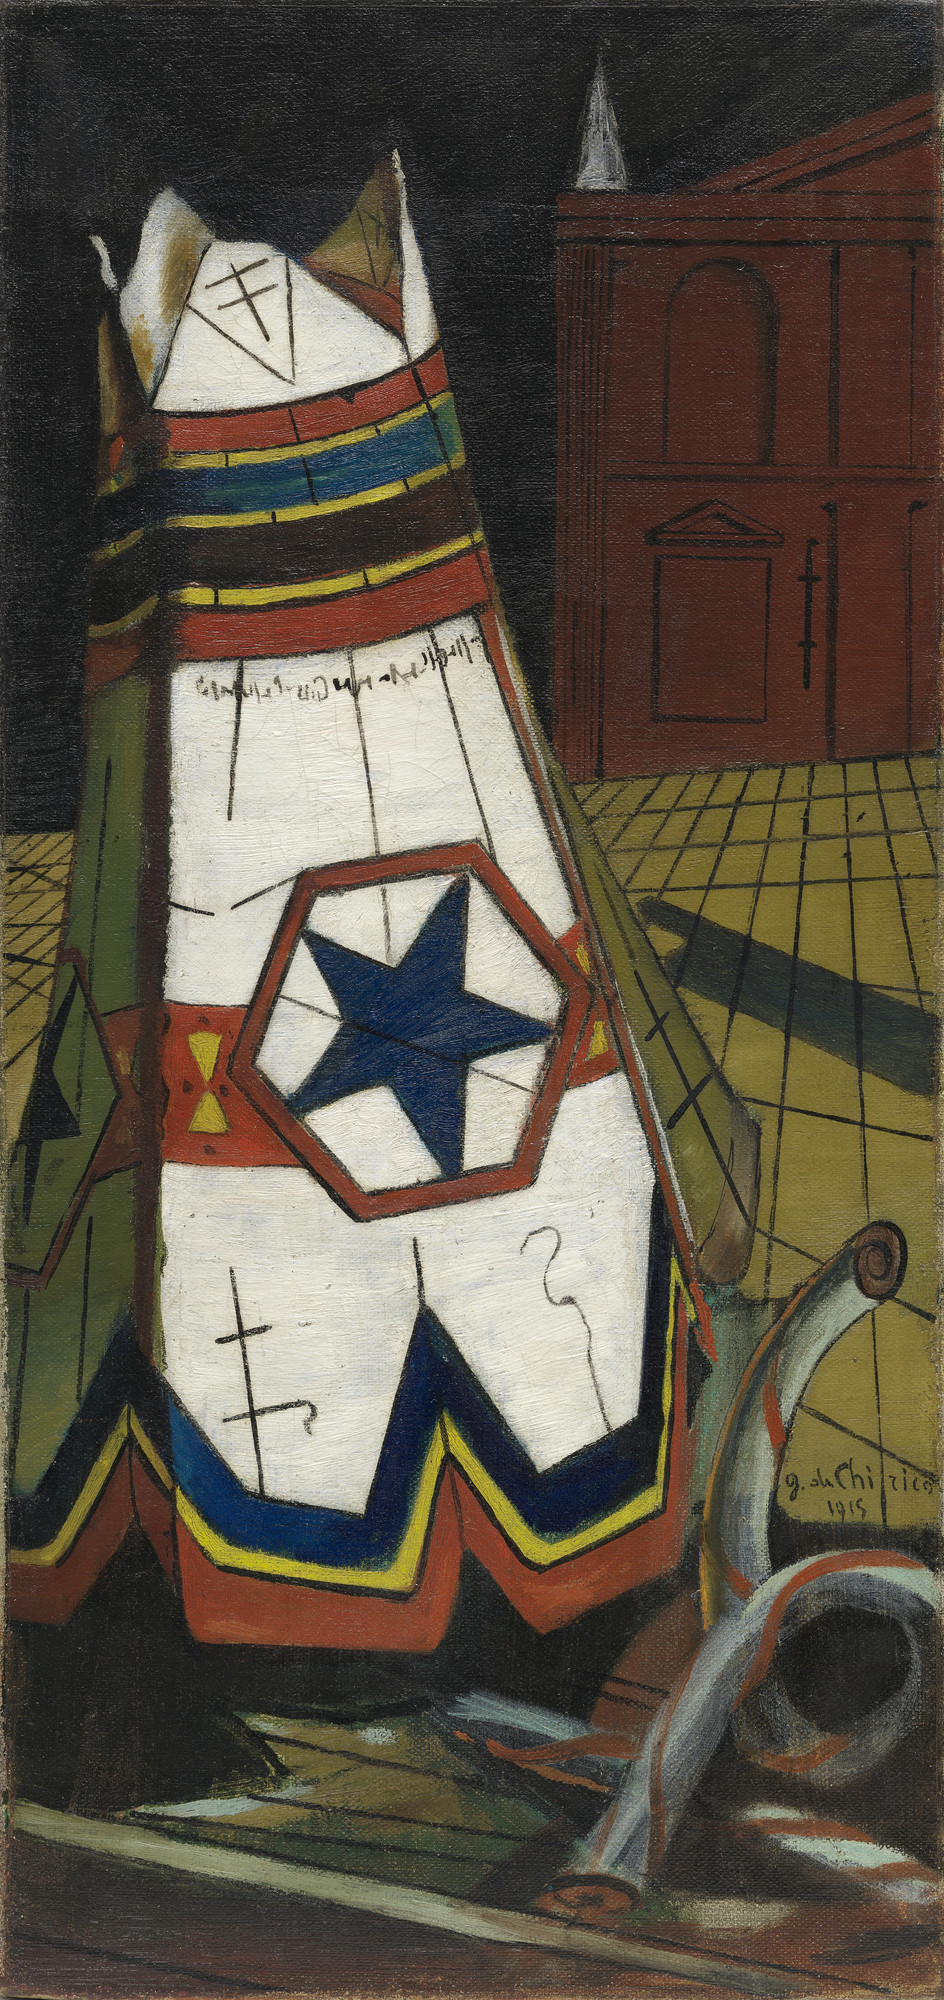 Giorgio de Chirico. Playthings of the Prince. fall 1915